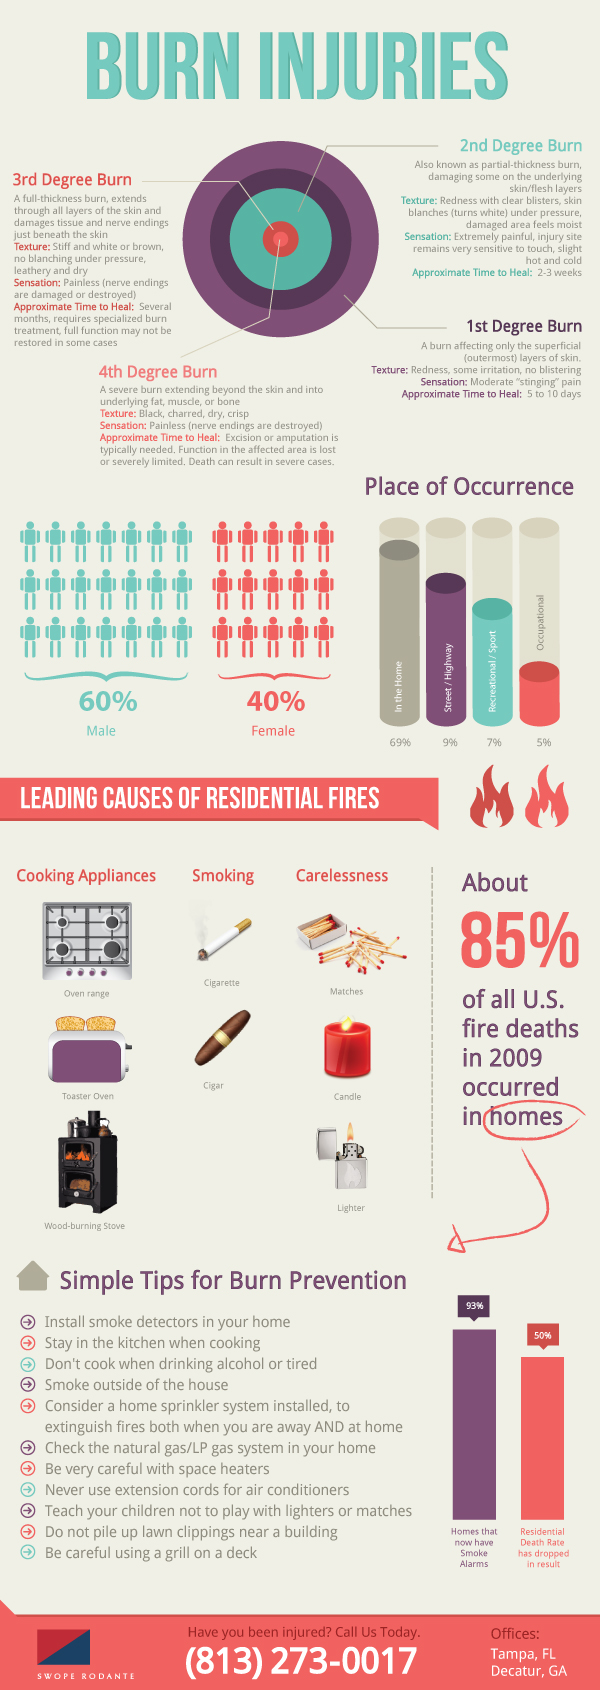 Different Types of Burn Injuries